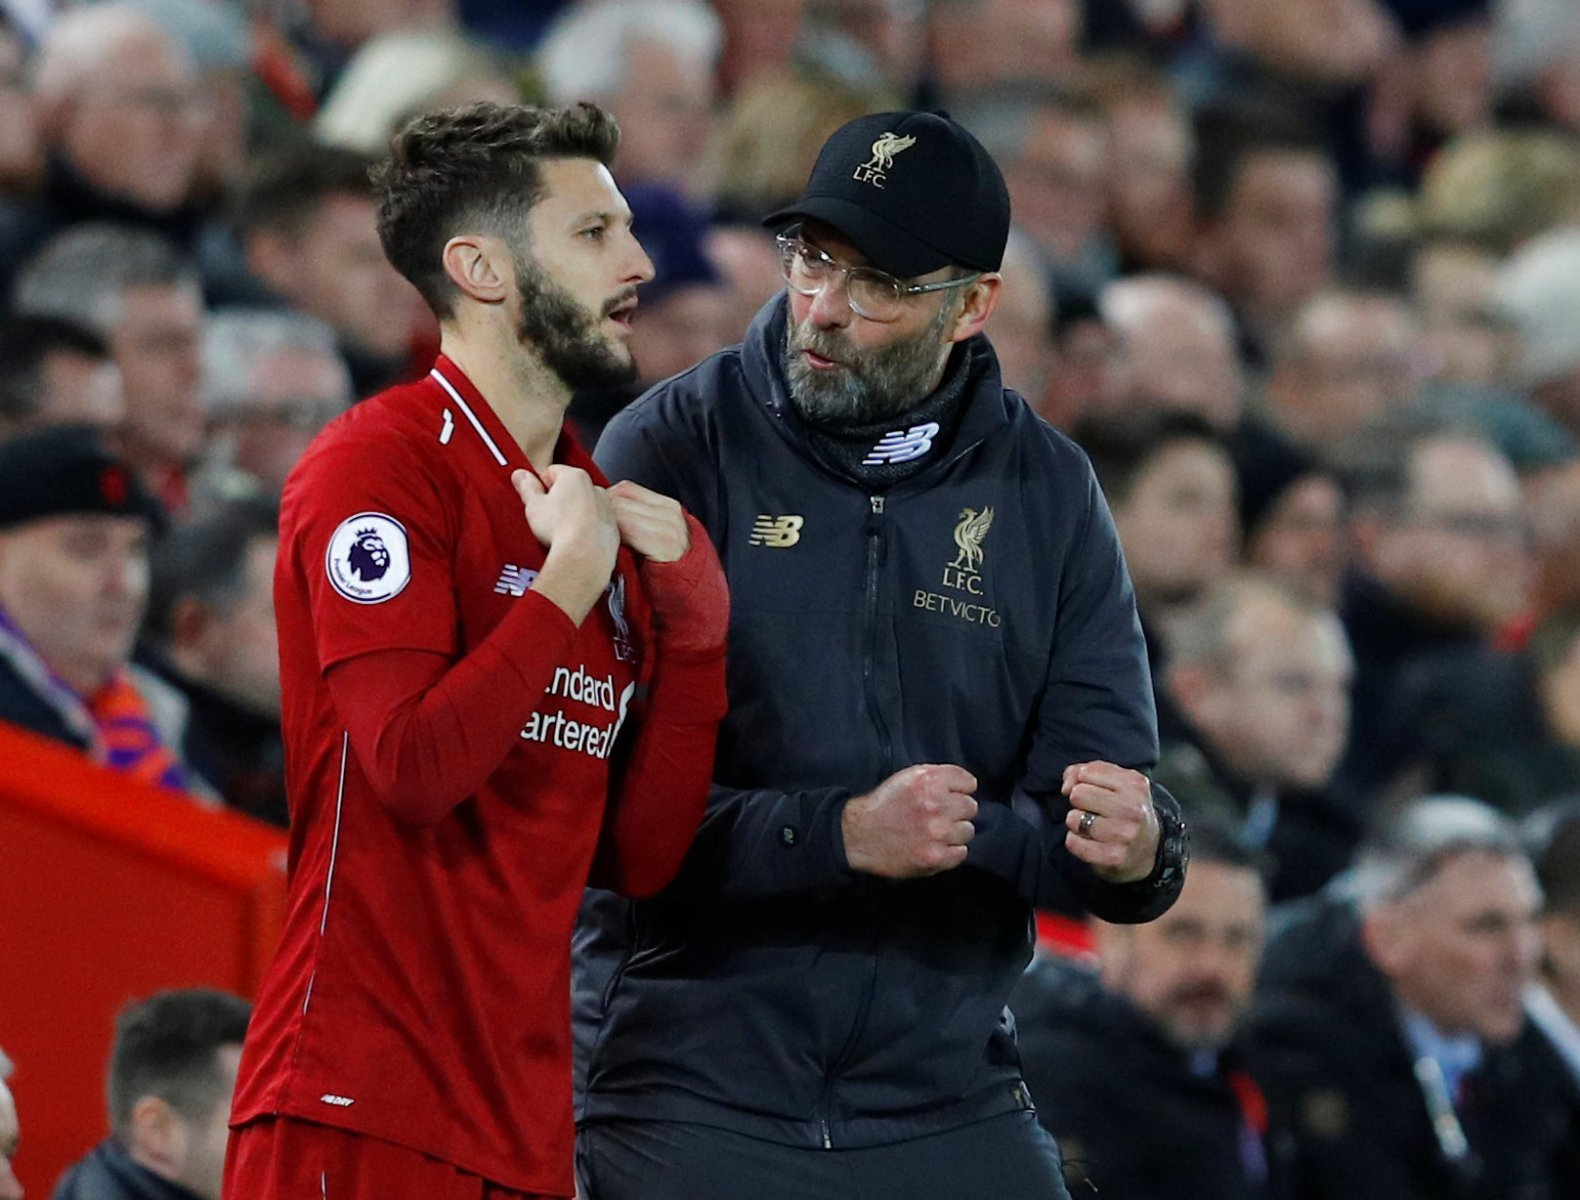 Liverpool fans on Twitter were raging when Lallana entered the fray at Goodison